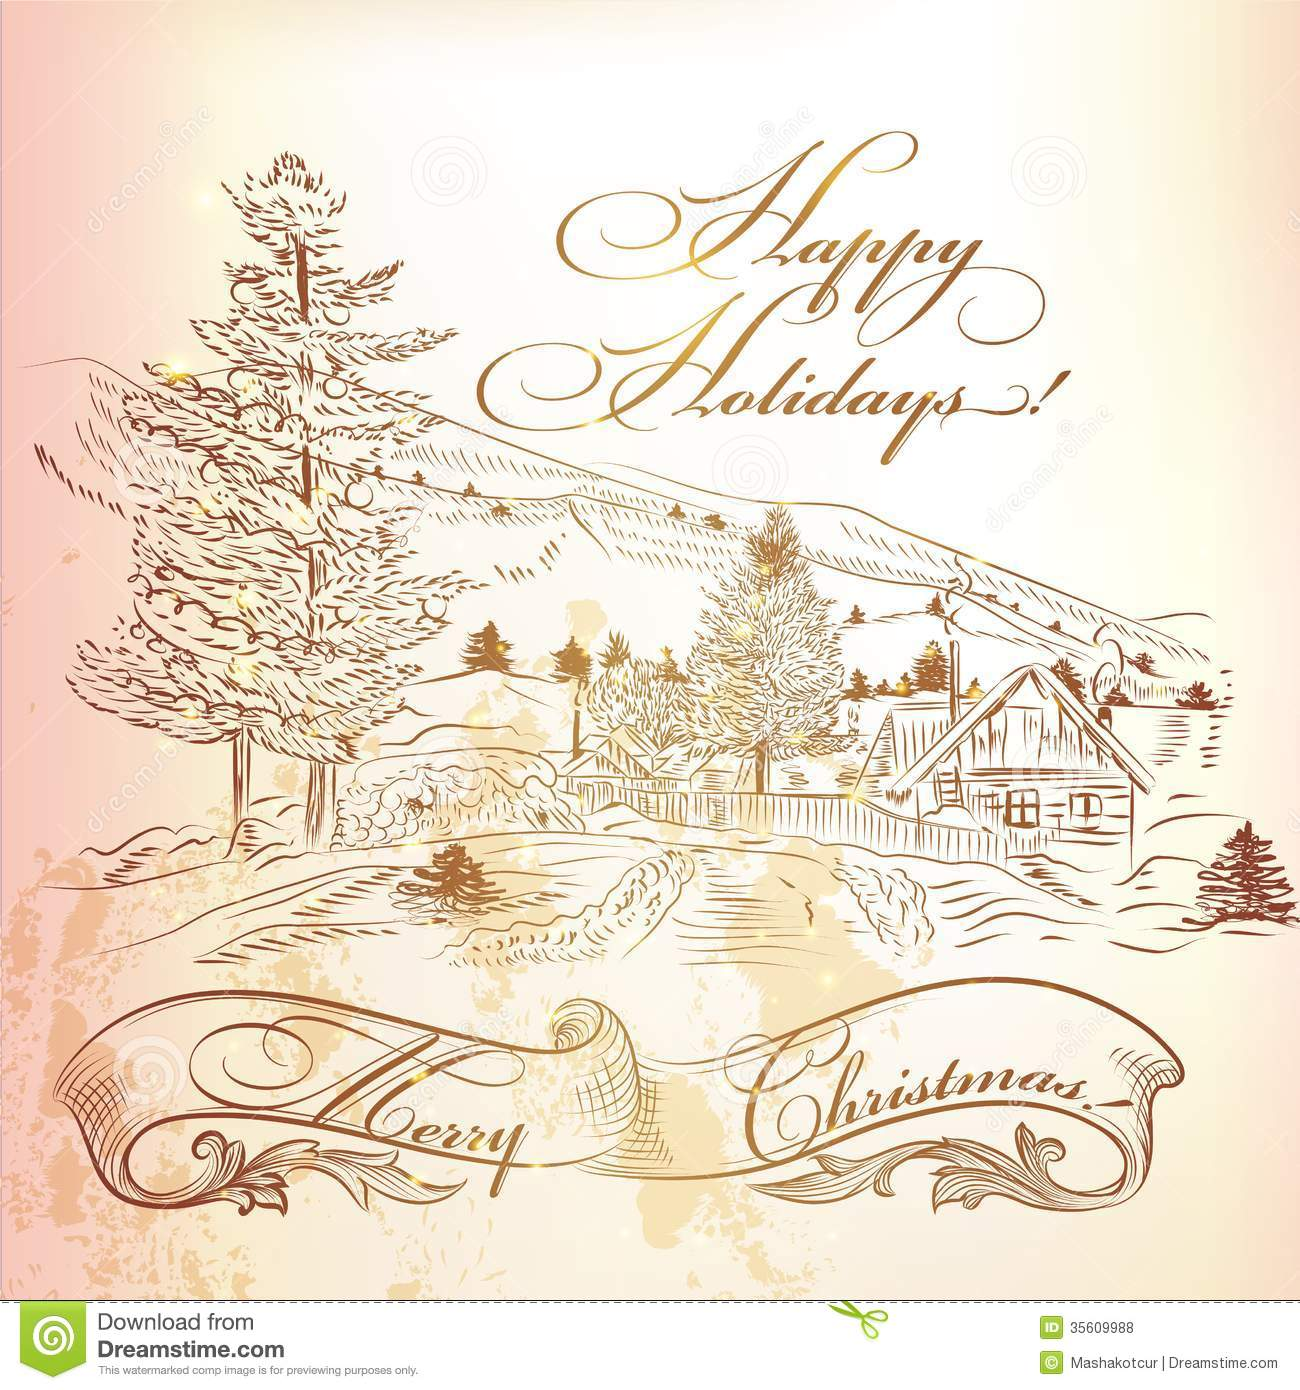 Christmas Greeting Card In Vintage Style With Hand Drawn